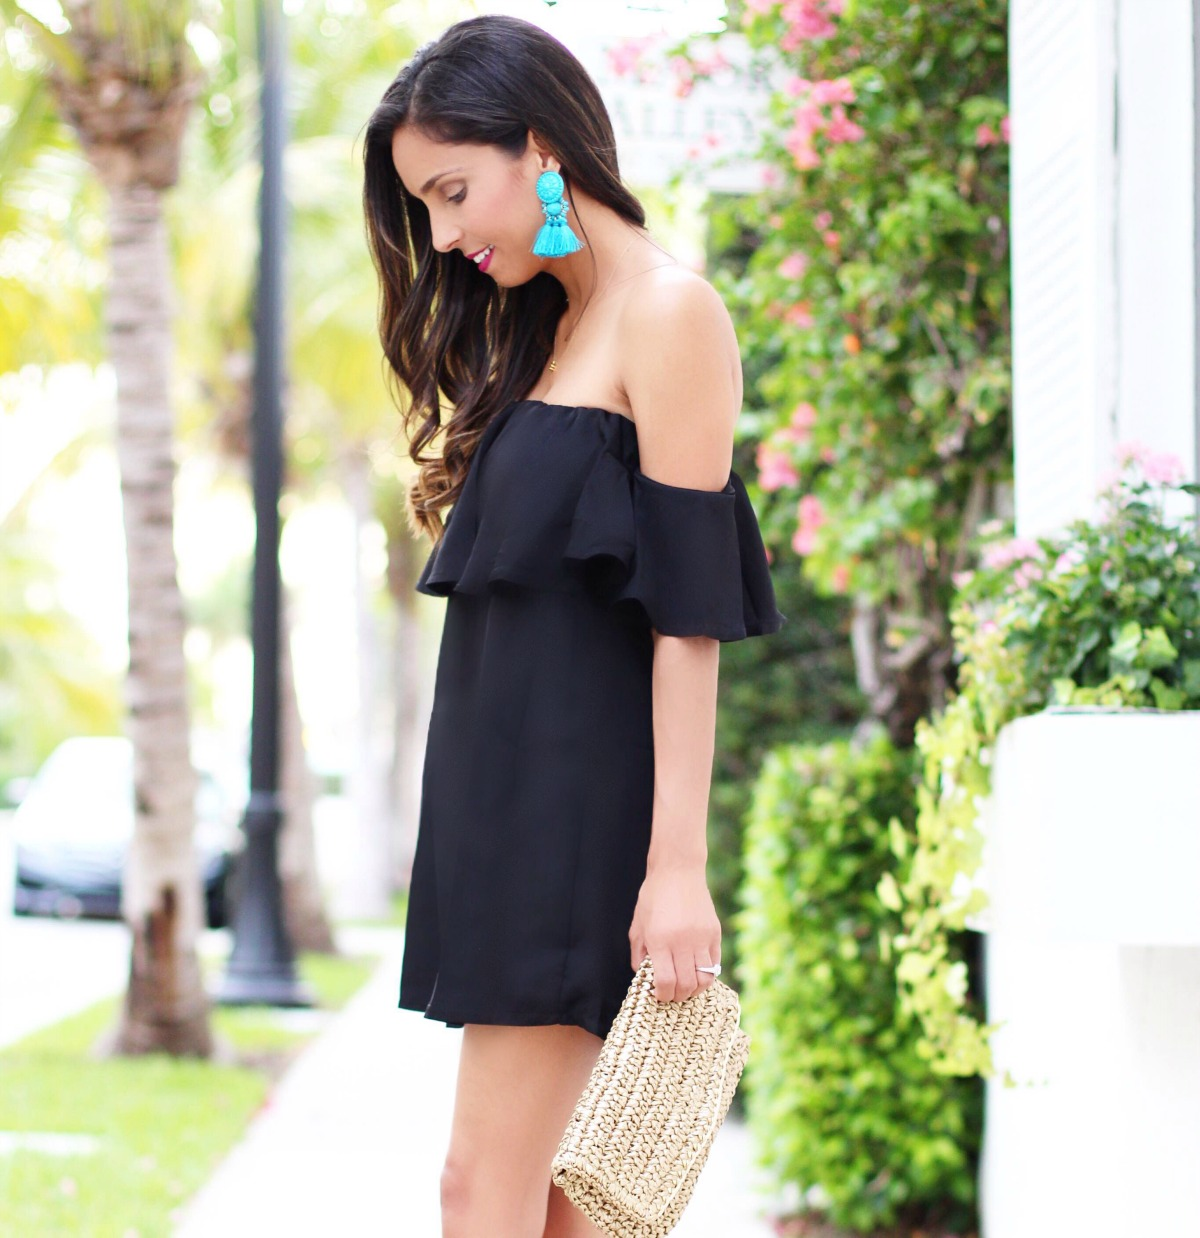 off the black dress with turquoise tassel earrings